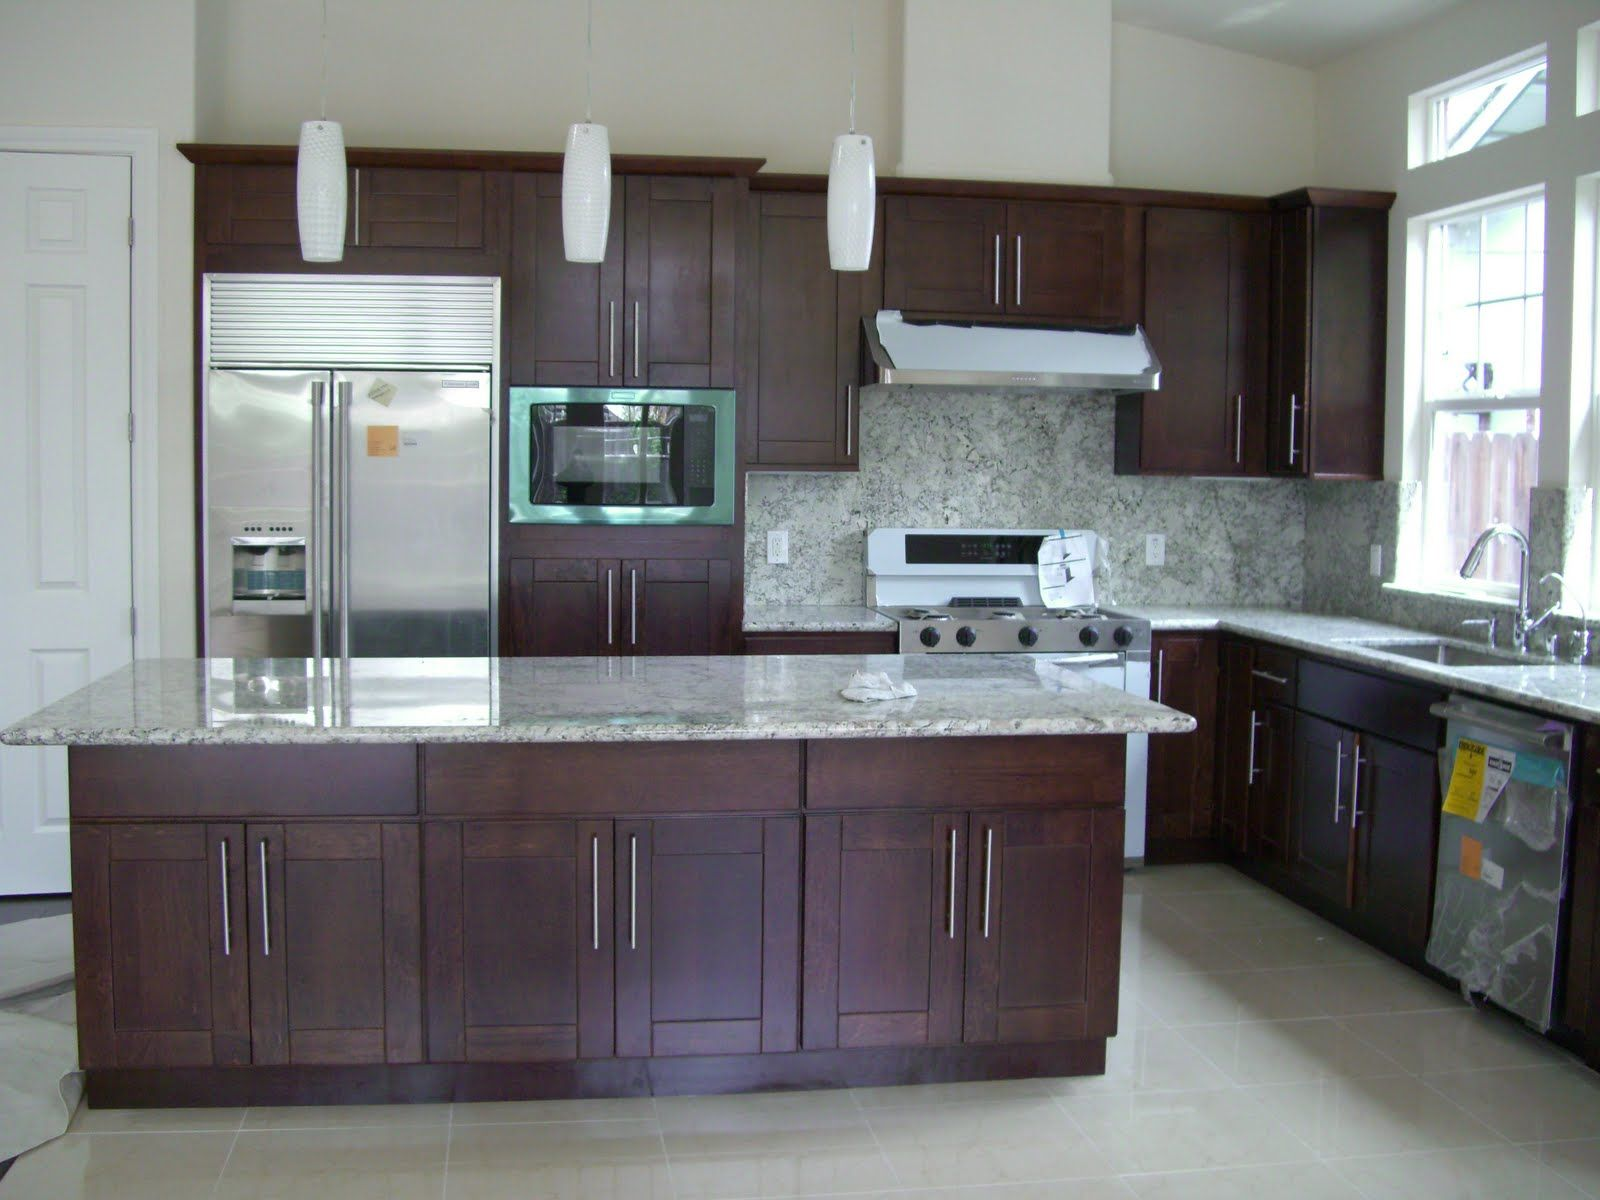 Delighful Kitchen Design Ideas Shaker Cabinets Cabinet Hardware Intended Decorating